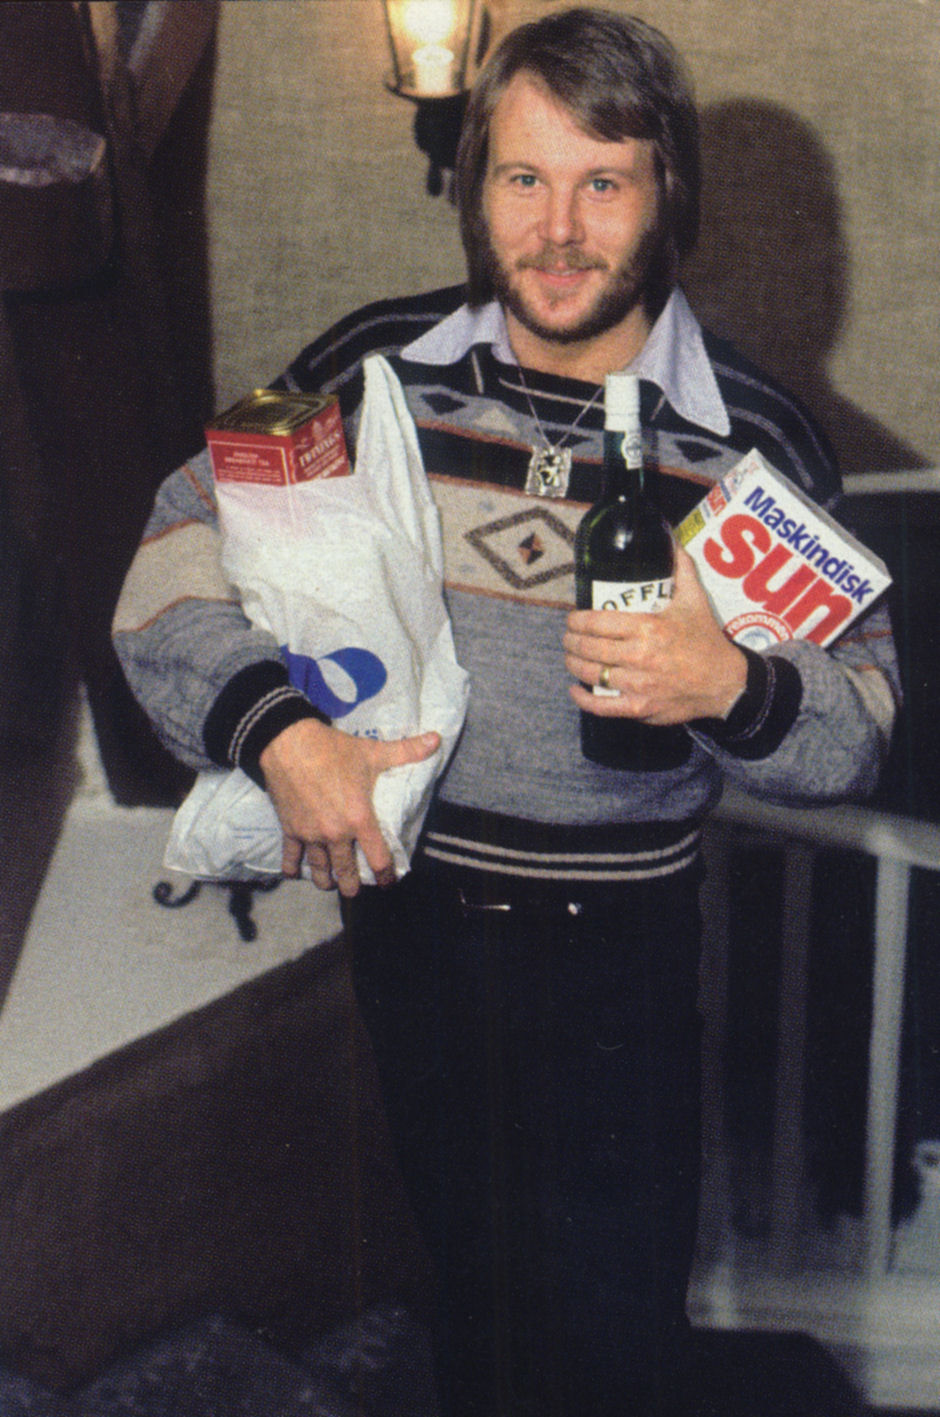 benny_with_groceries